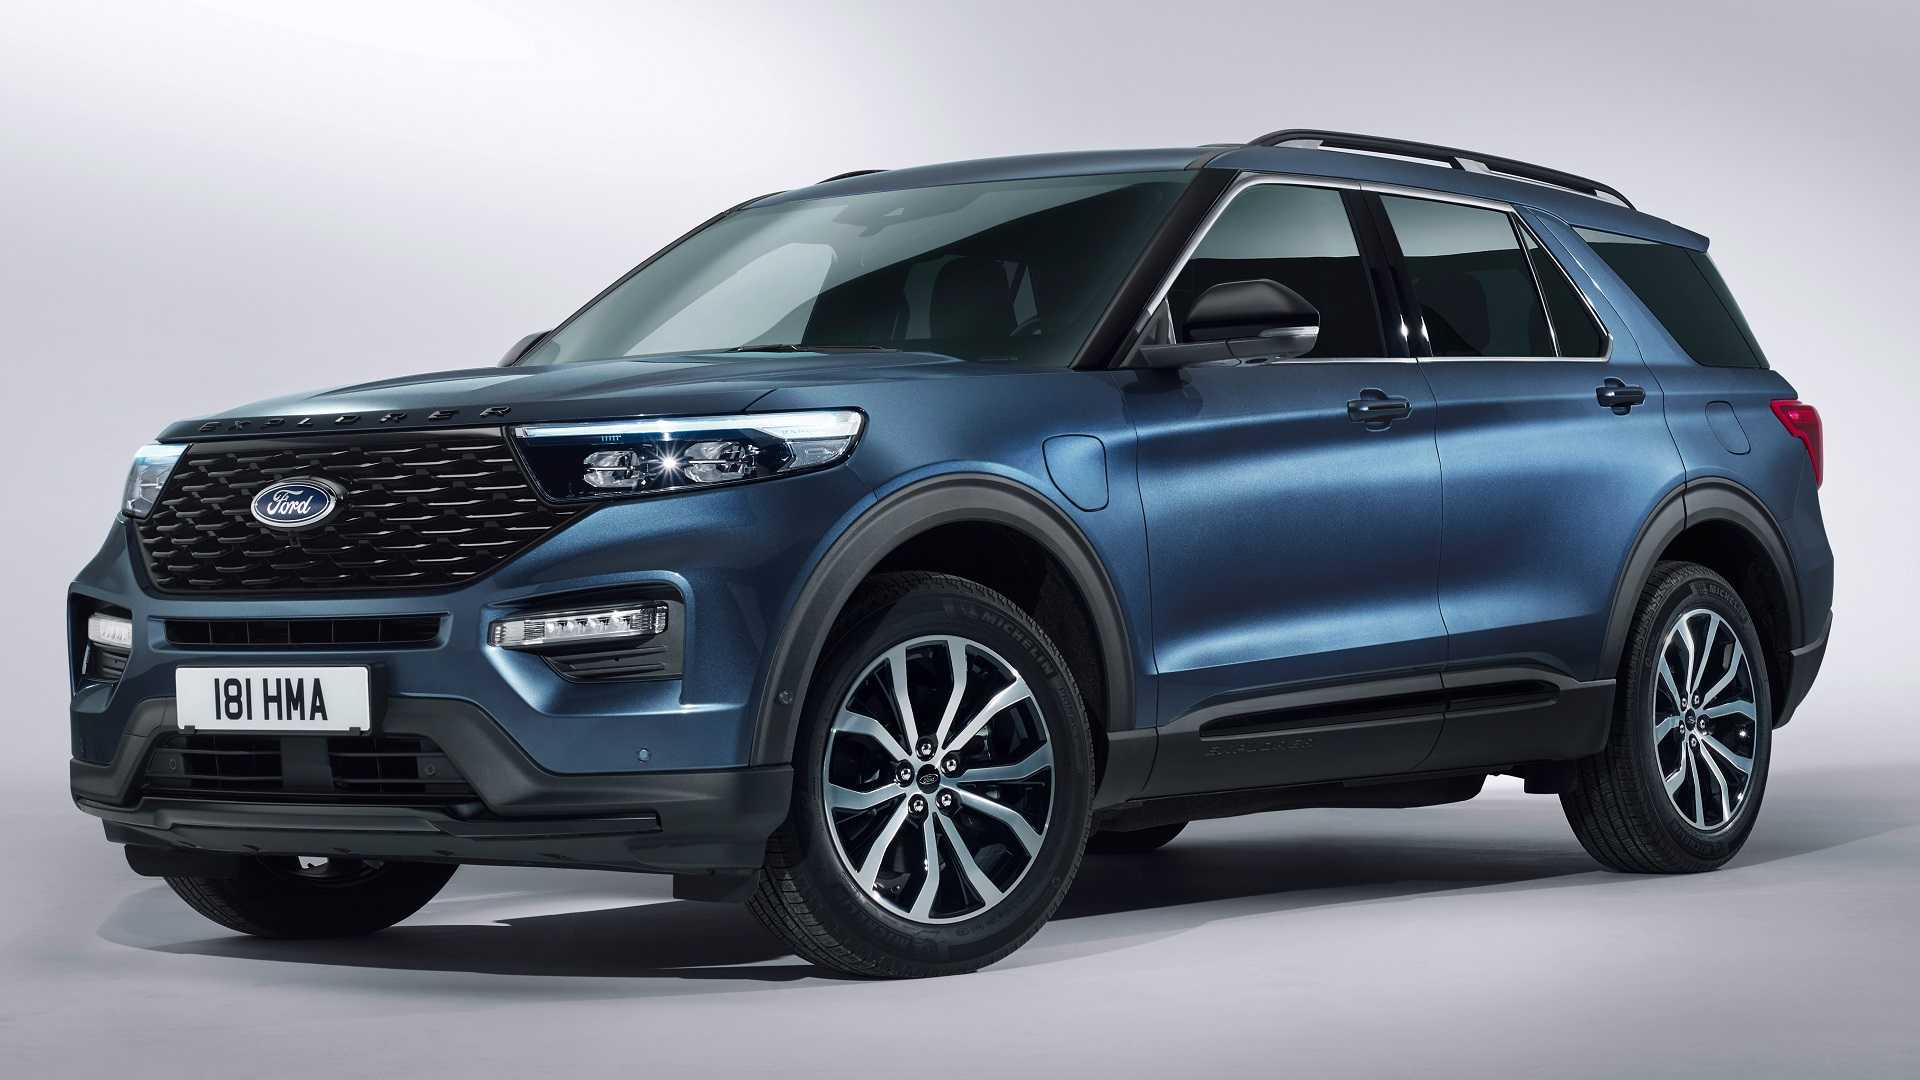 33 New Release Date Of 2020 Ford Explorer Price And Release Date